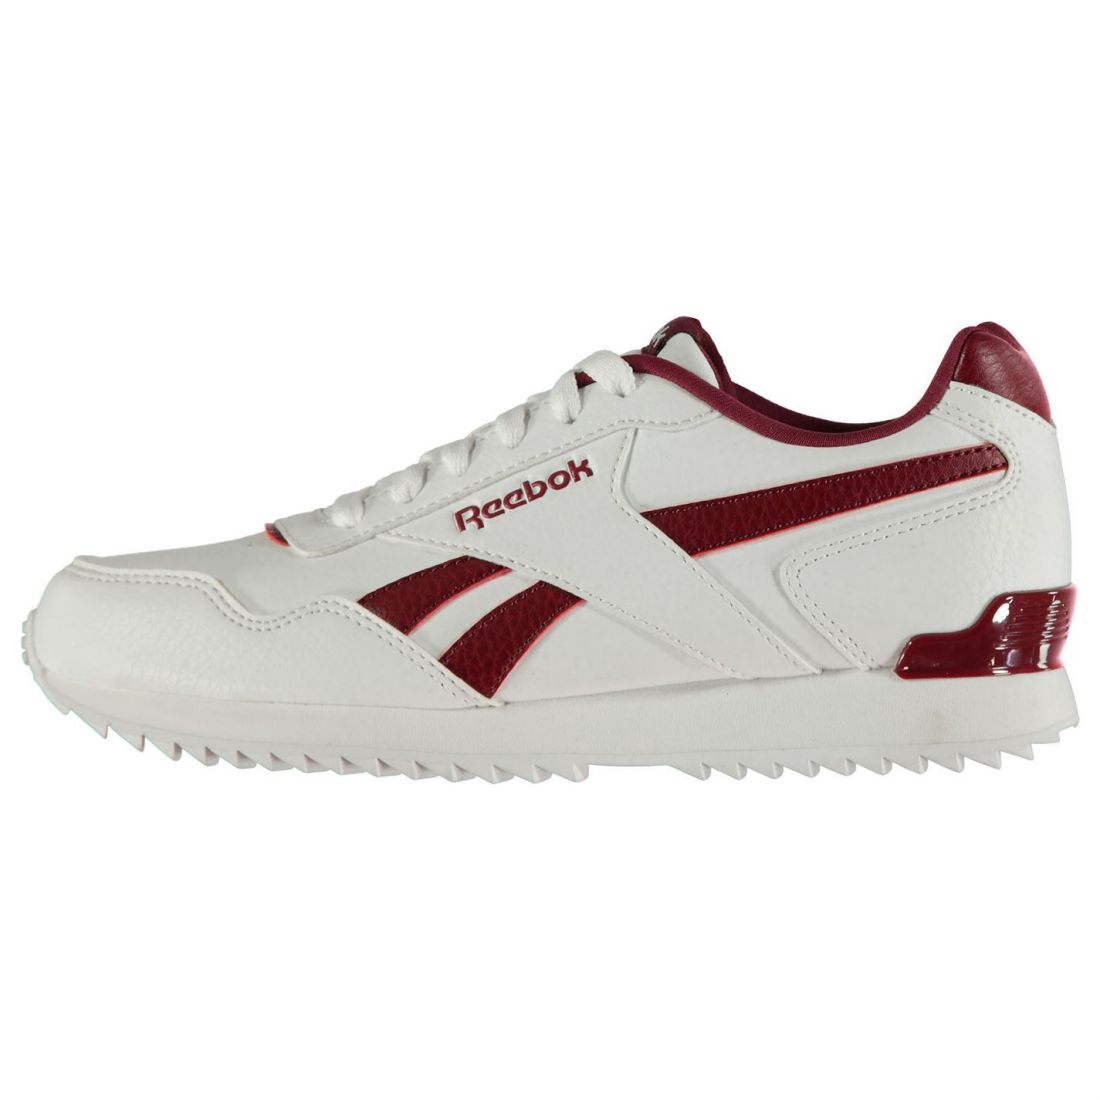 Reebok Royal Glide Sneakers Youngster Boys Classic Laces Fastened Padded Ankle